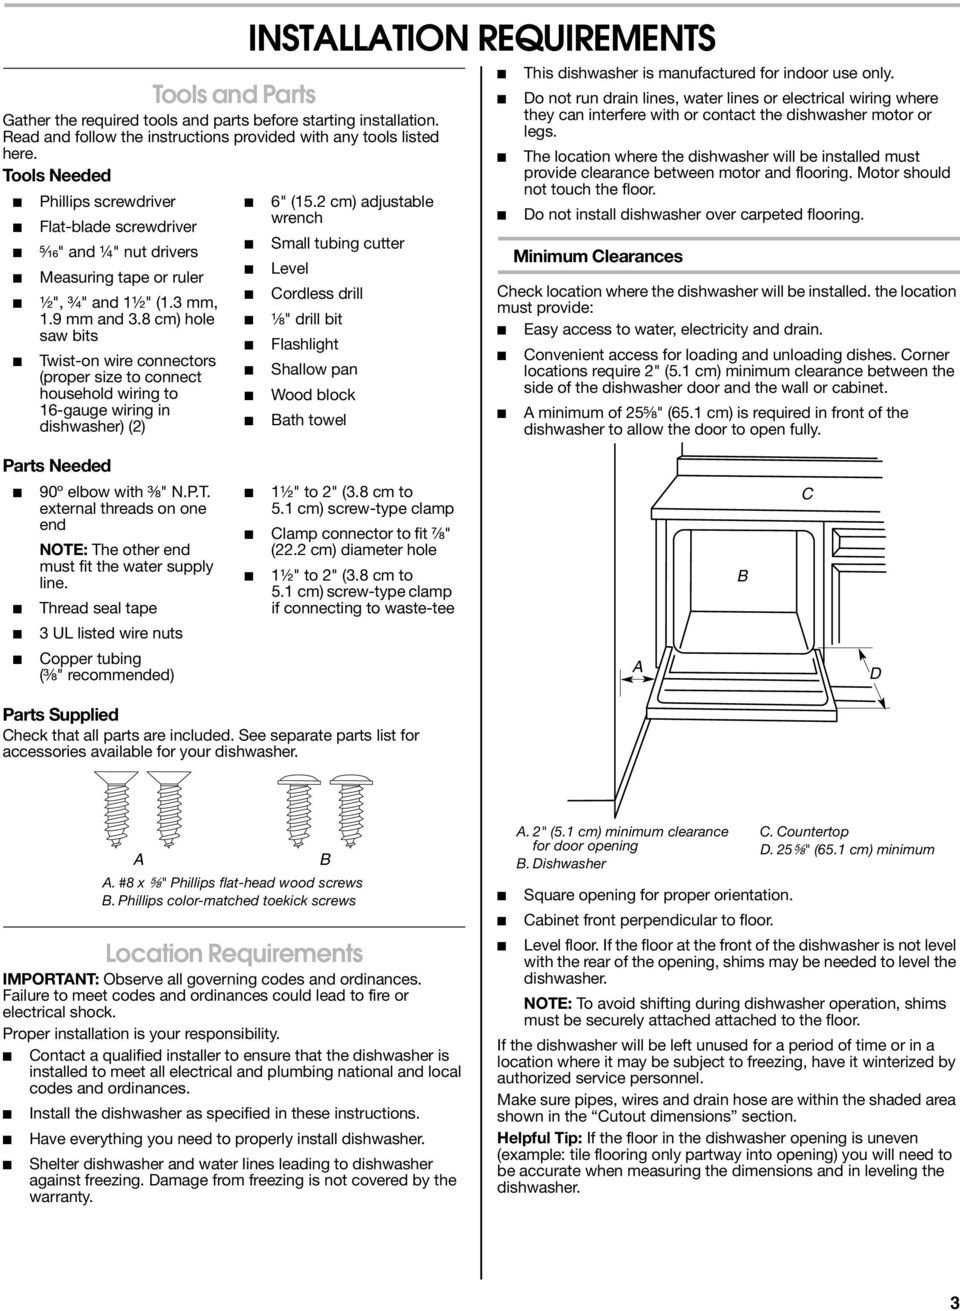 Pleasant Undercounter Dishwasher Installation Instructions Instructions D Wiring Cloud Usnesfoxcilixyz